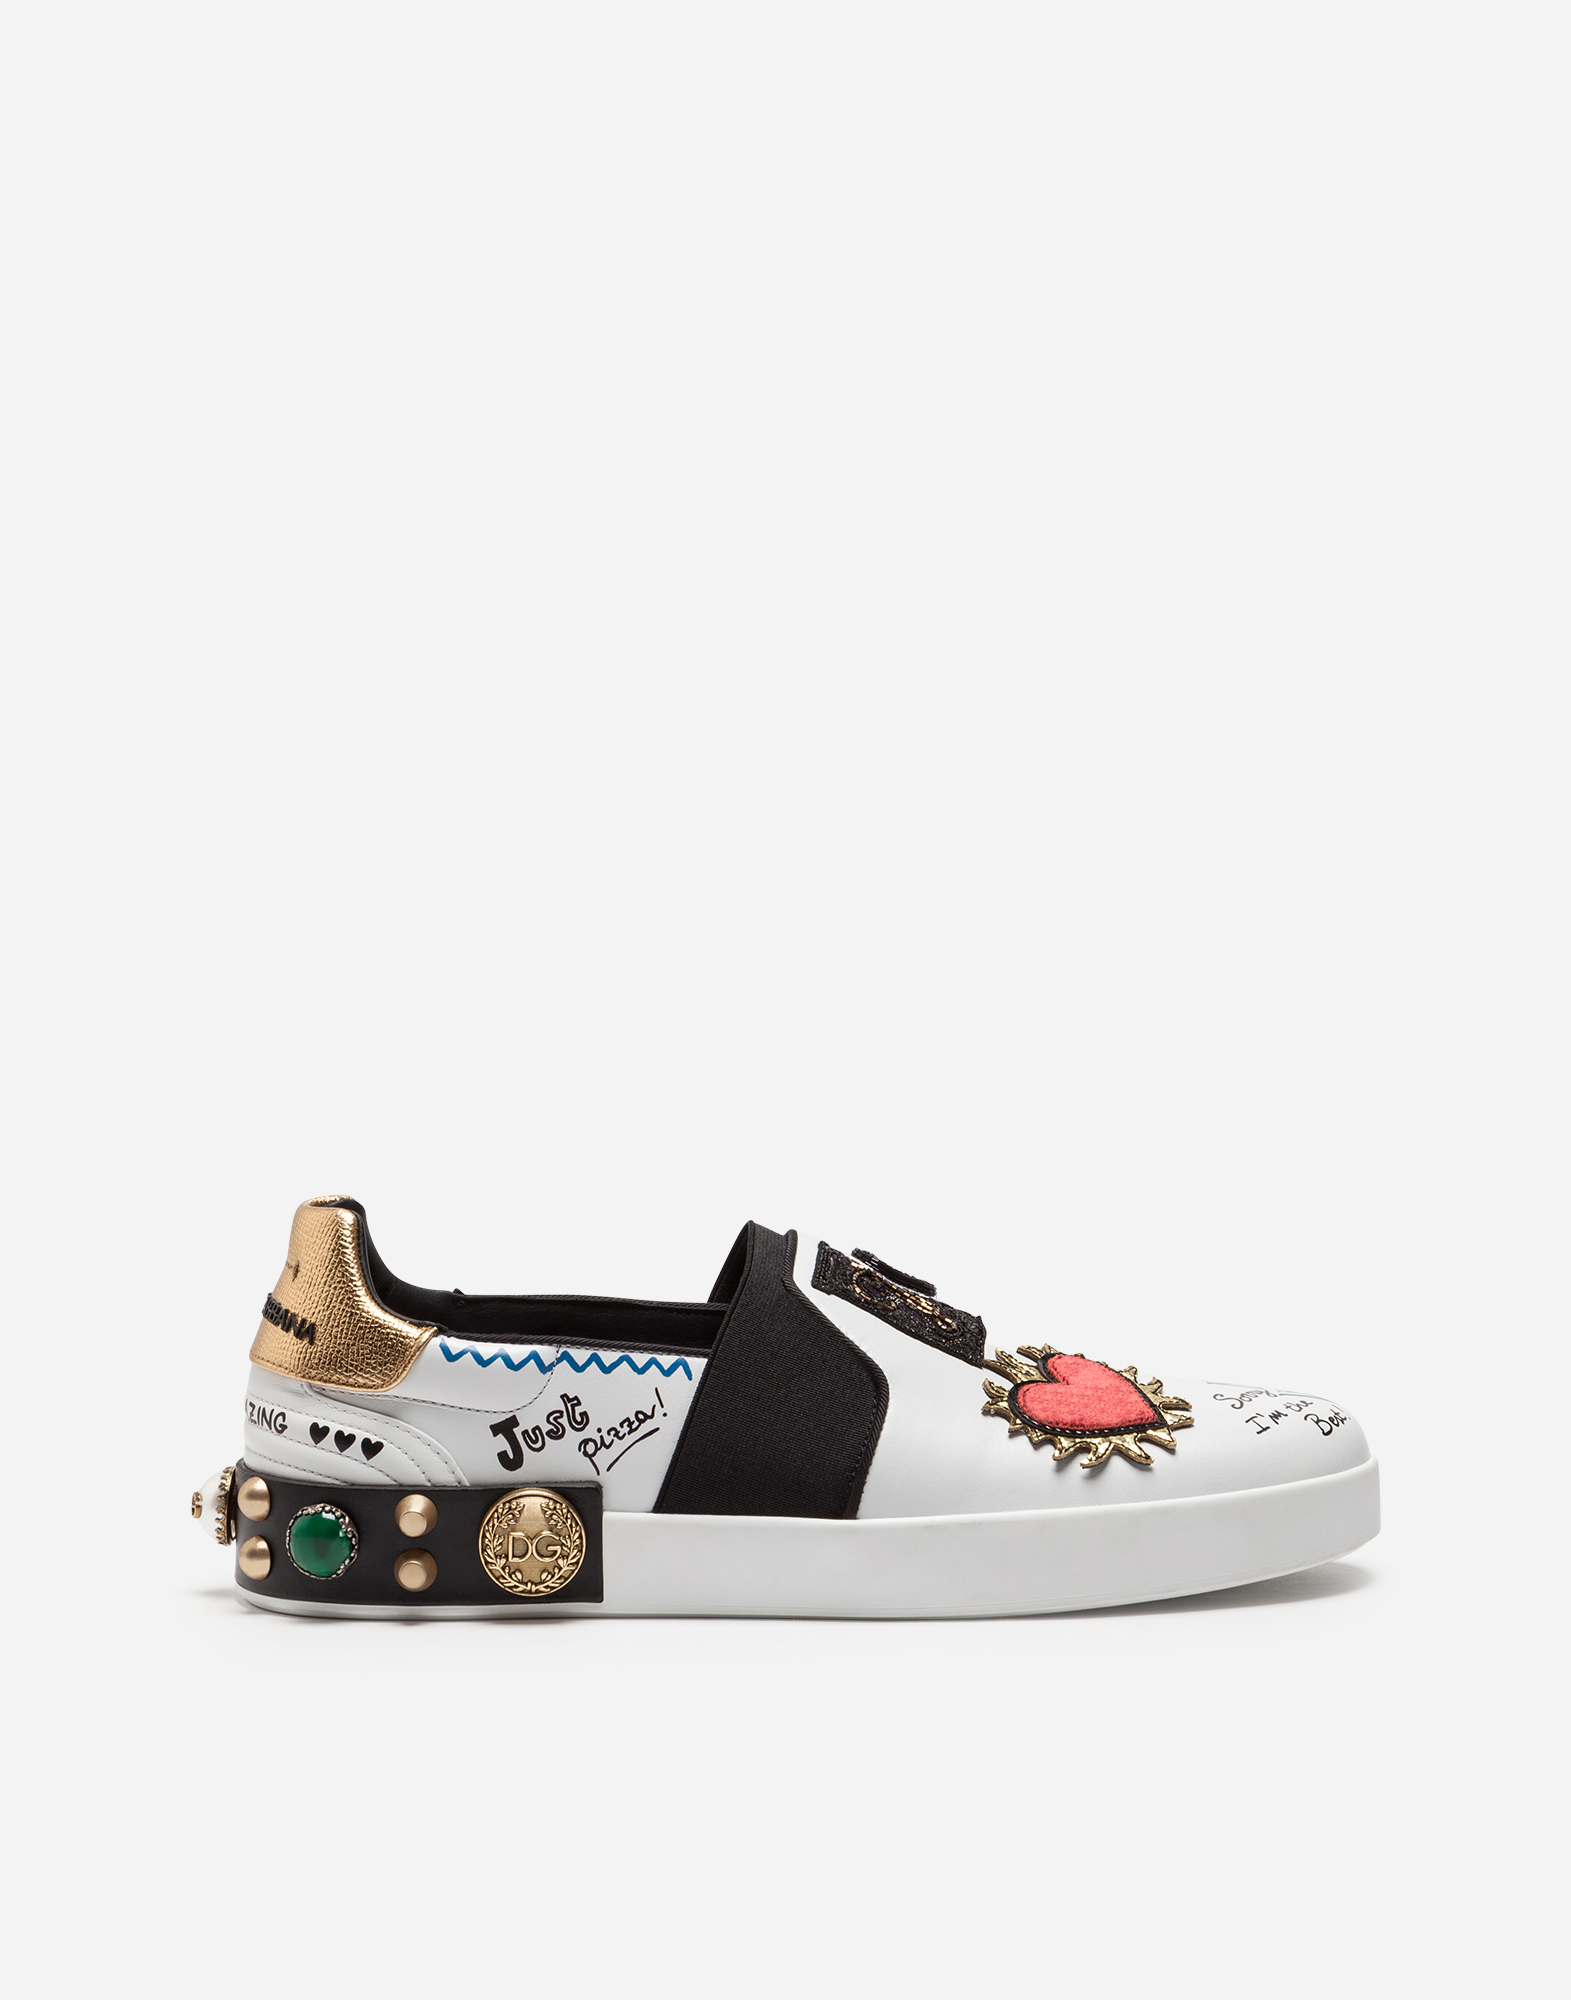 PORTOFINO SLIP-ON SNEAKERS IN PRINTED CALFSKIN